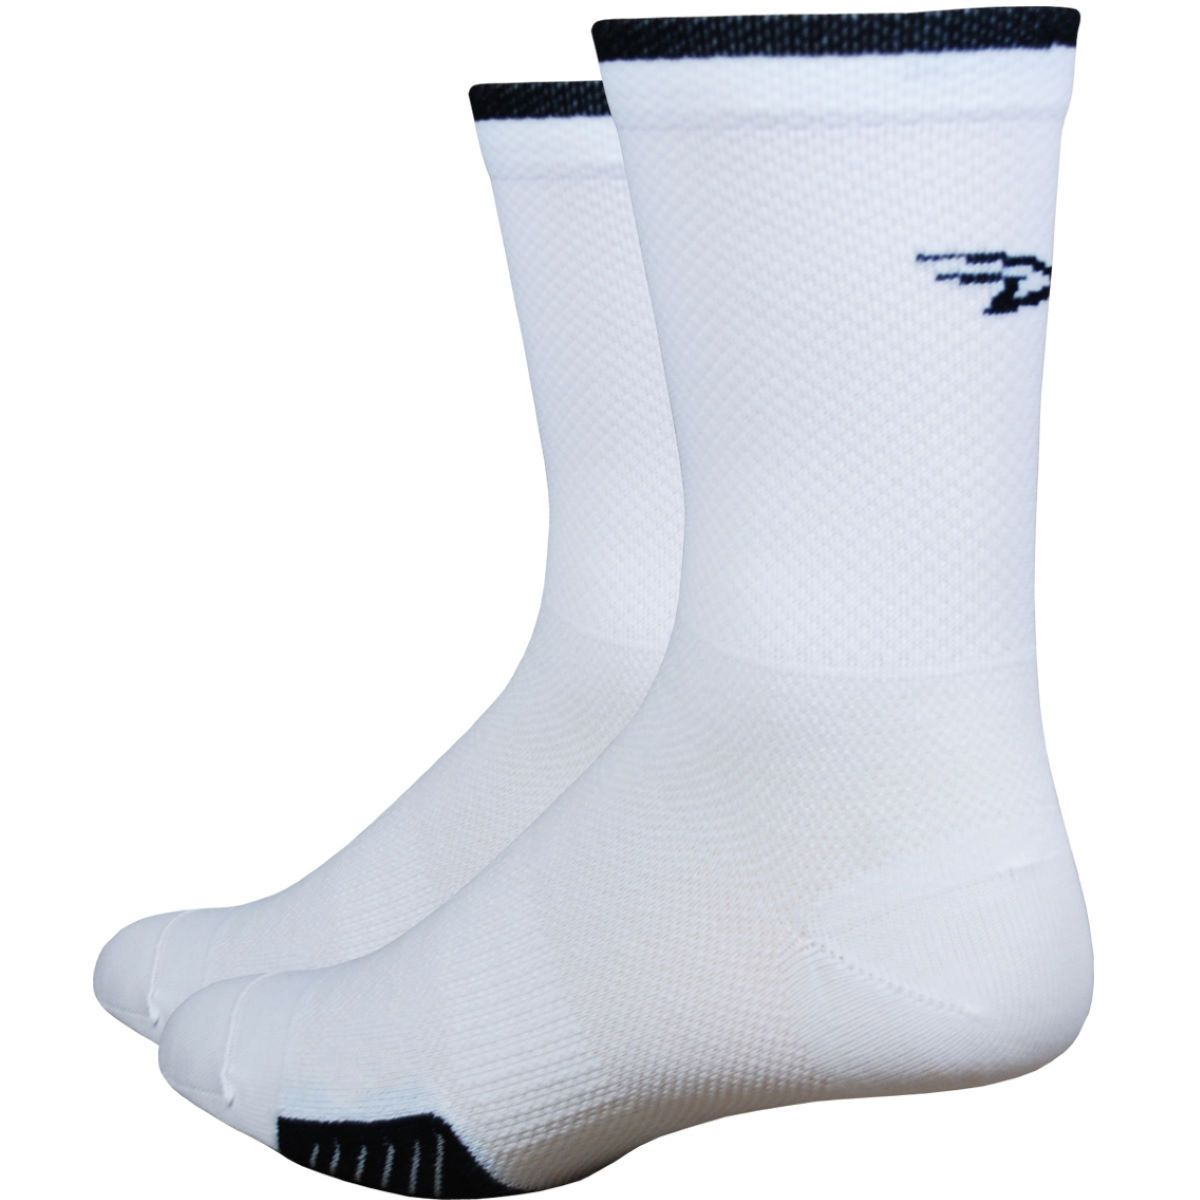 "DeFeet DeFeet Cyclismo 5"" Socks   Socks"